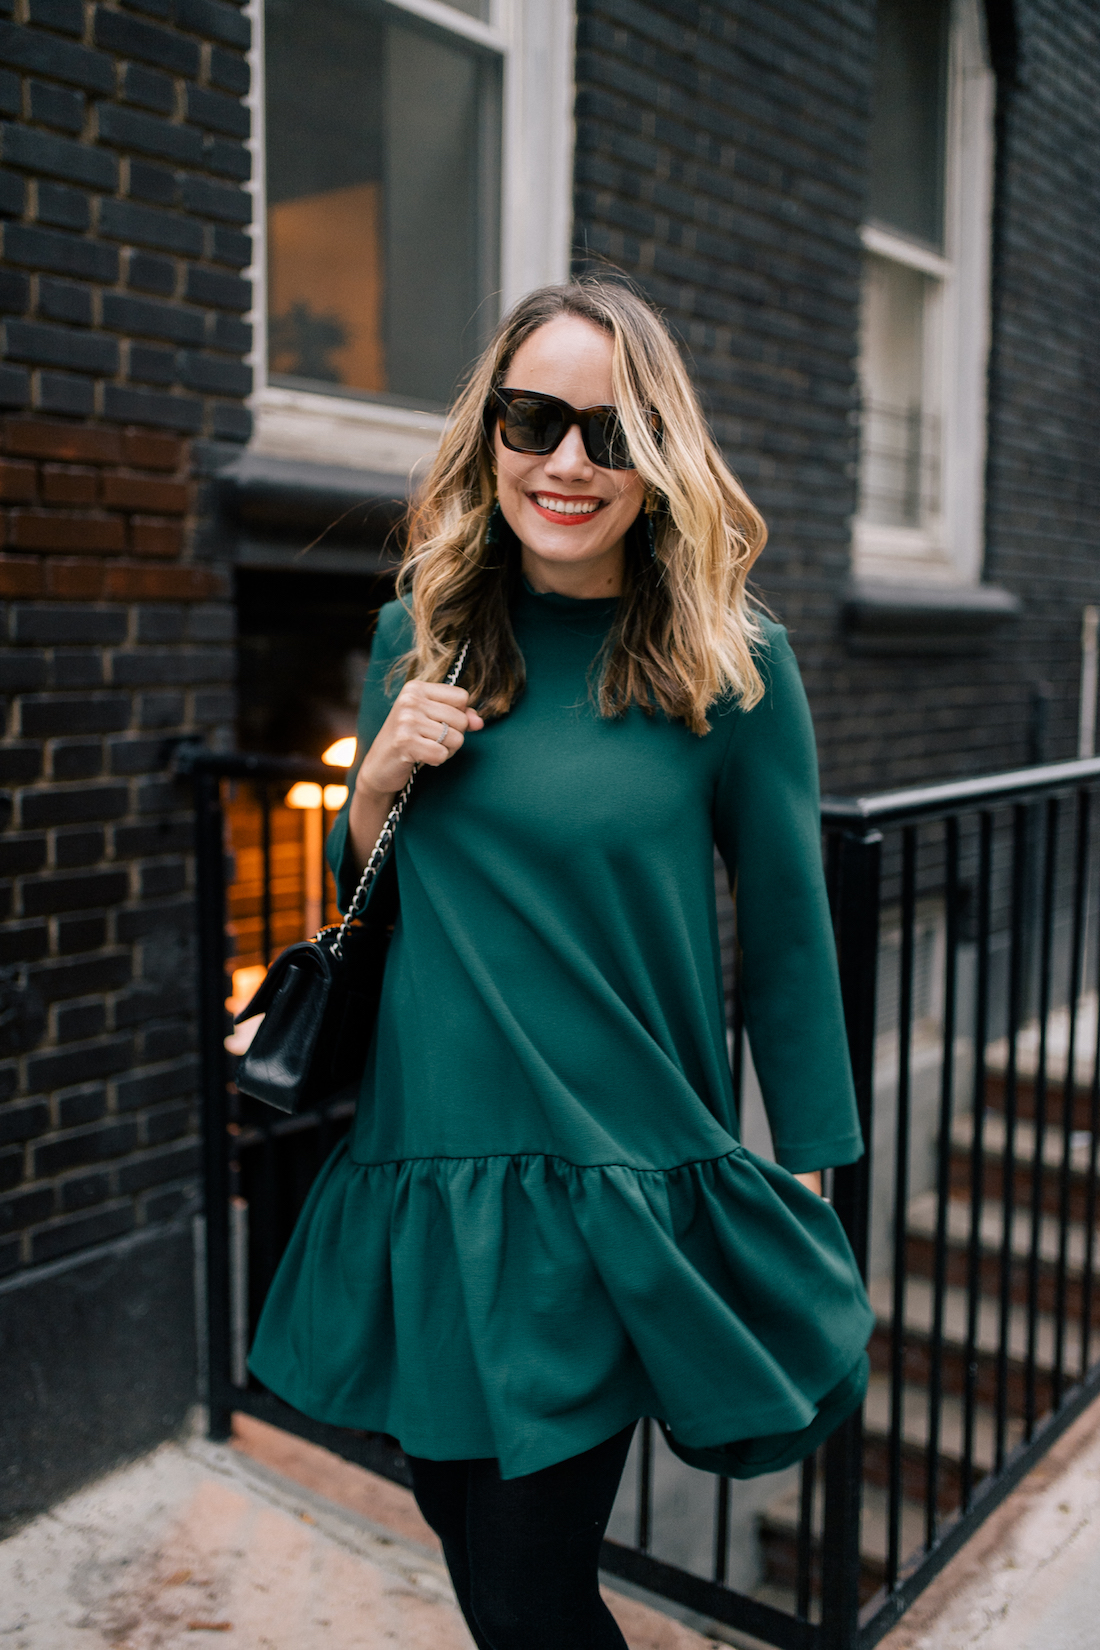 EDIT Dress (a few years old - this is almost identical, this is chic on the model and only $12 but I can't vouch for this website)